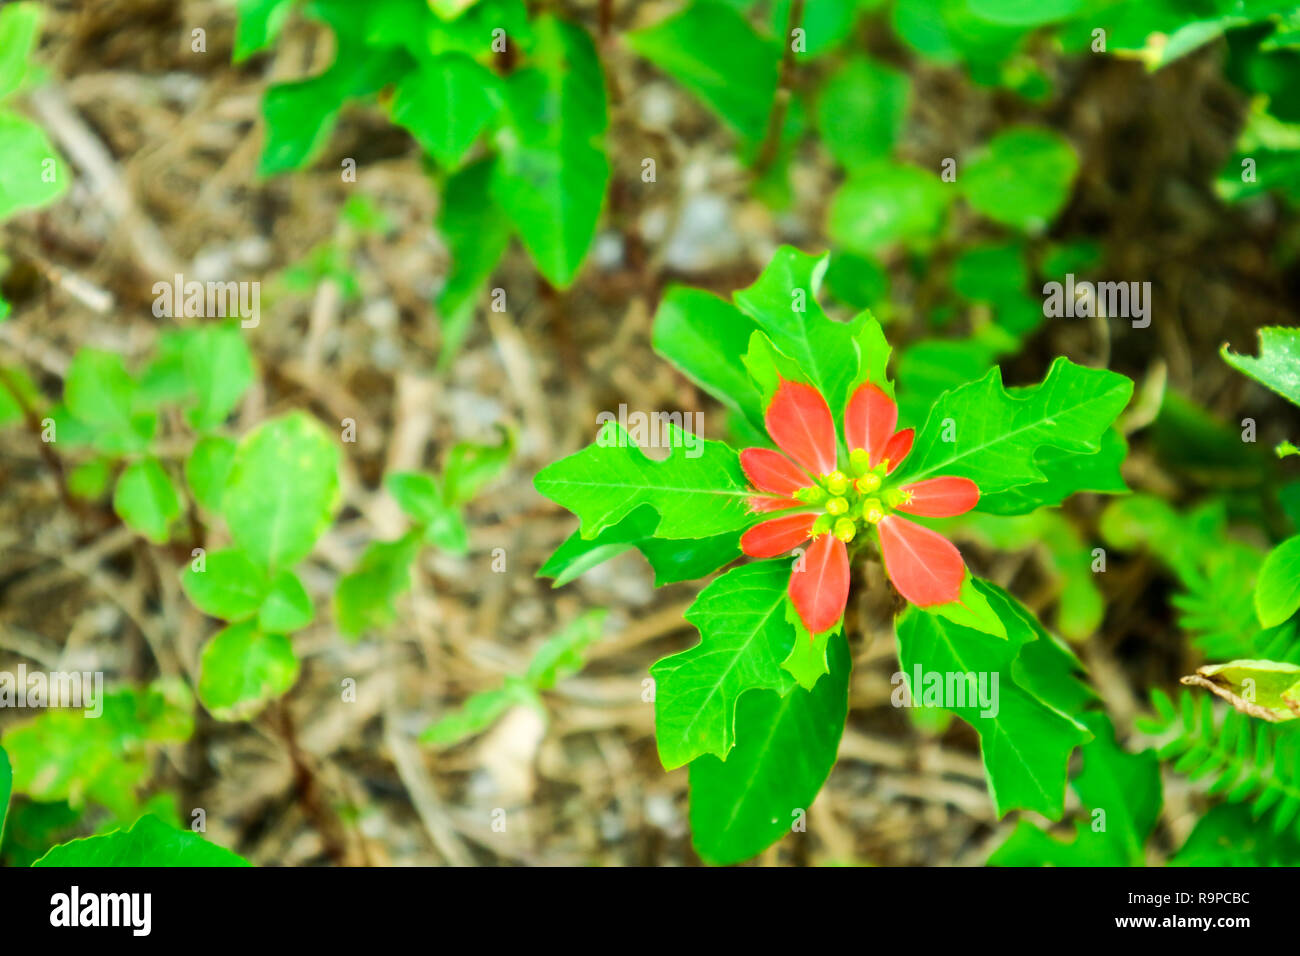 Euphorbia uses, effectiveness, possible side effects, interactions, dosage, user ratings and products that contain Euphorbia. - Stock Image